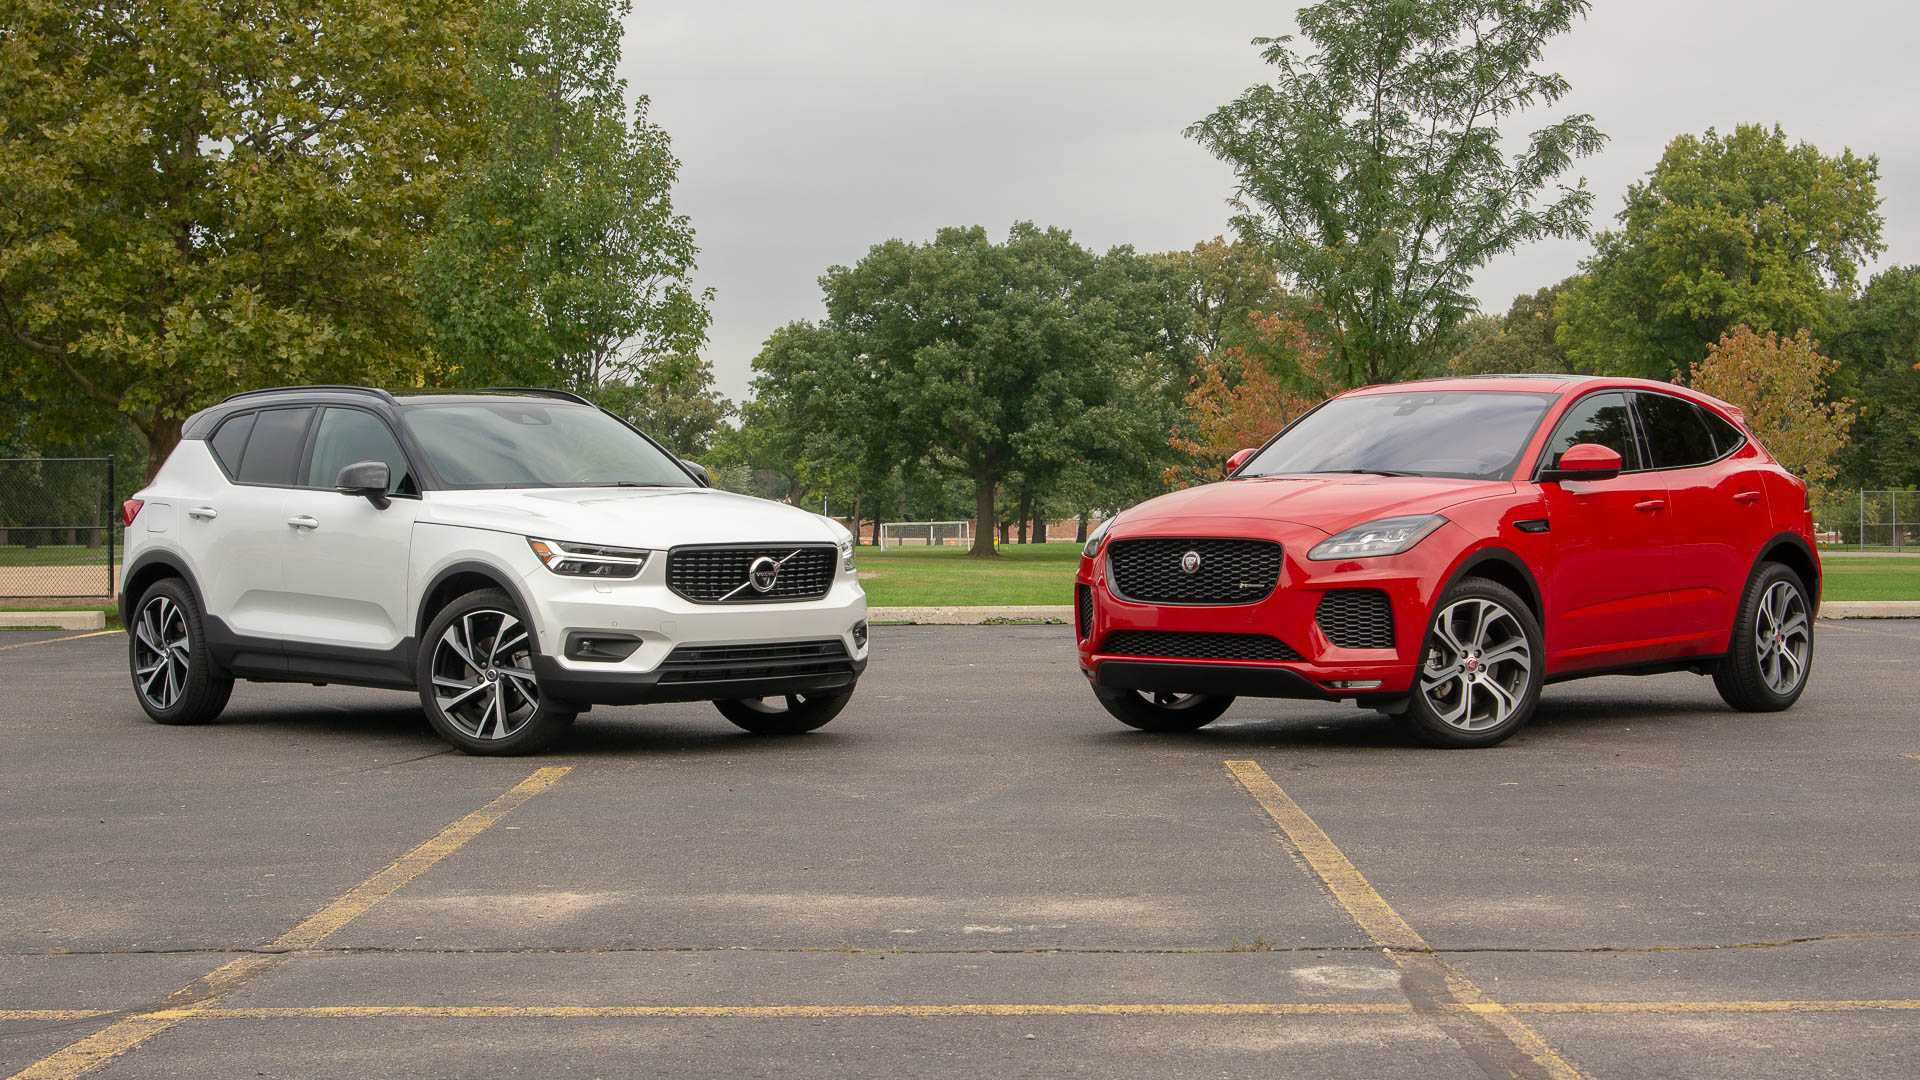 48 Best Review Best Volvo Electric Suv 2019 First Drive Price Performance And Review Redesign with Best Volvo Electric Suv 2019 First Drive Price Performance And Review